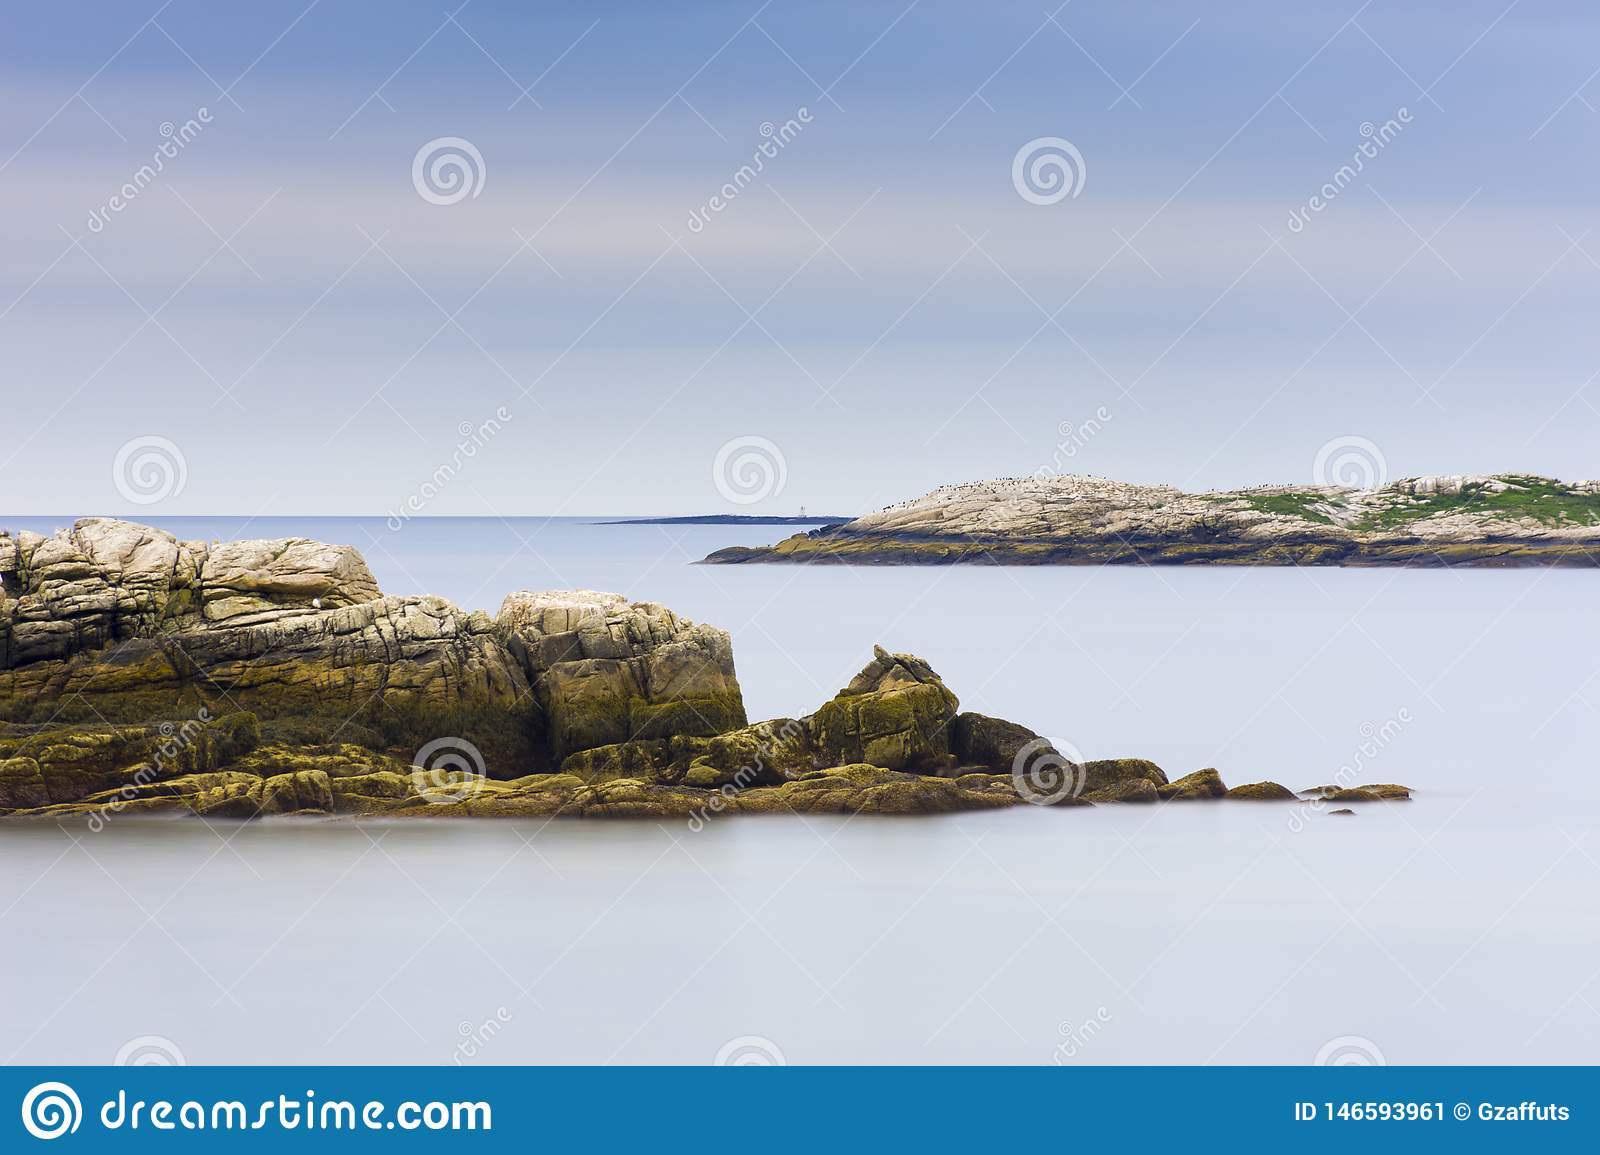 Maine rocky coast line with smooth ocean and blue sky